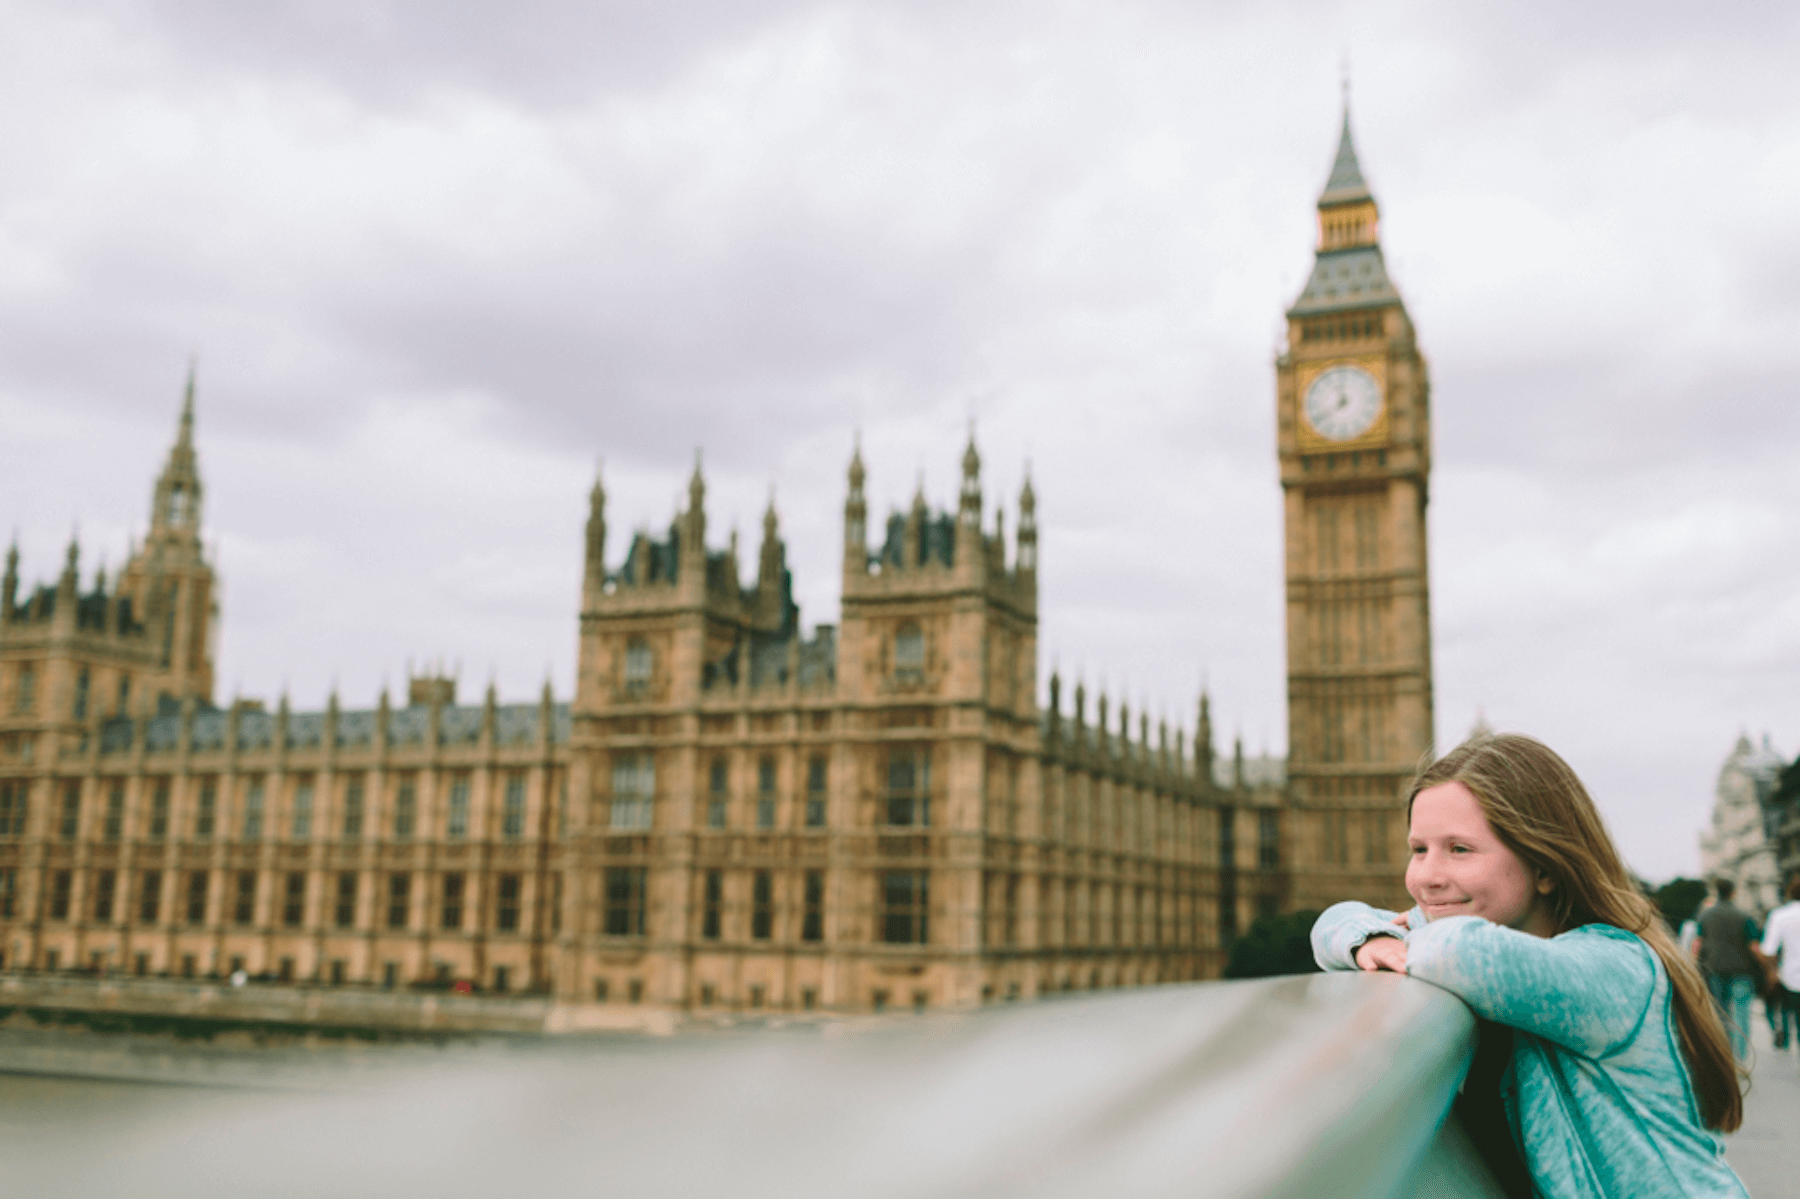 Young girl overlooking the Thames river with Big Ben in the background in London, UK